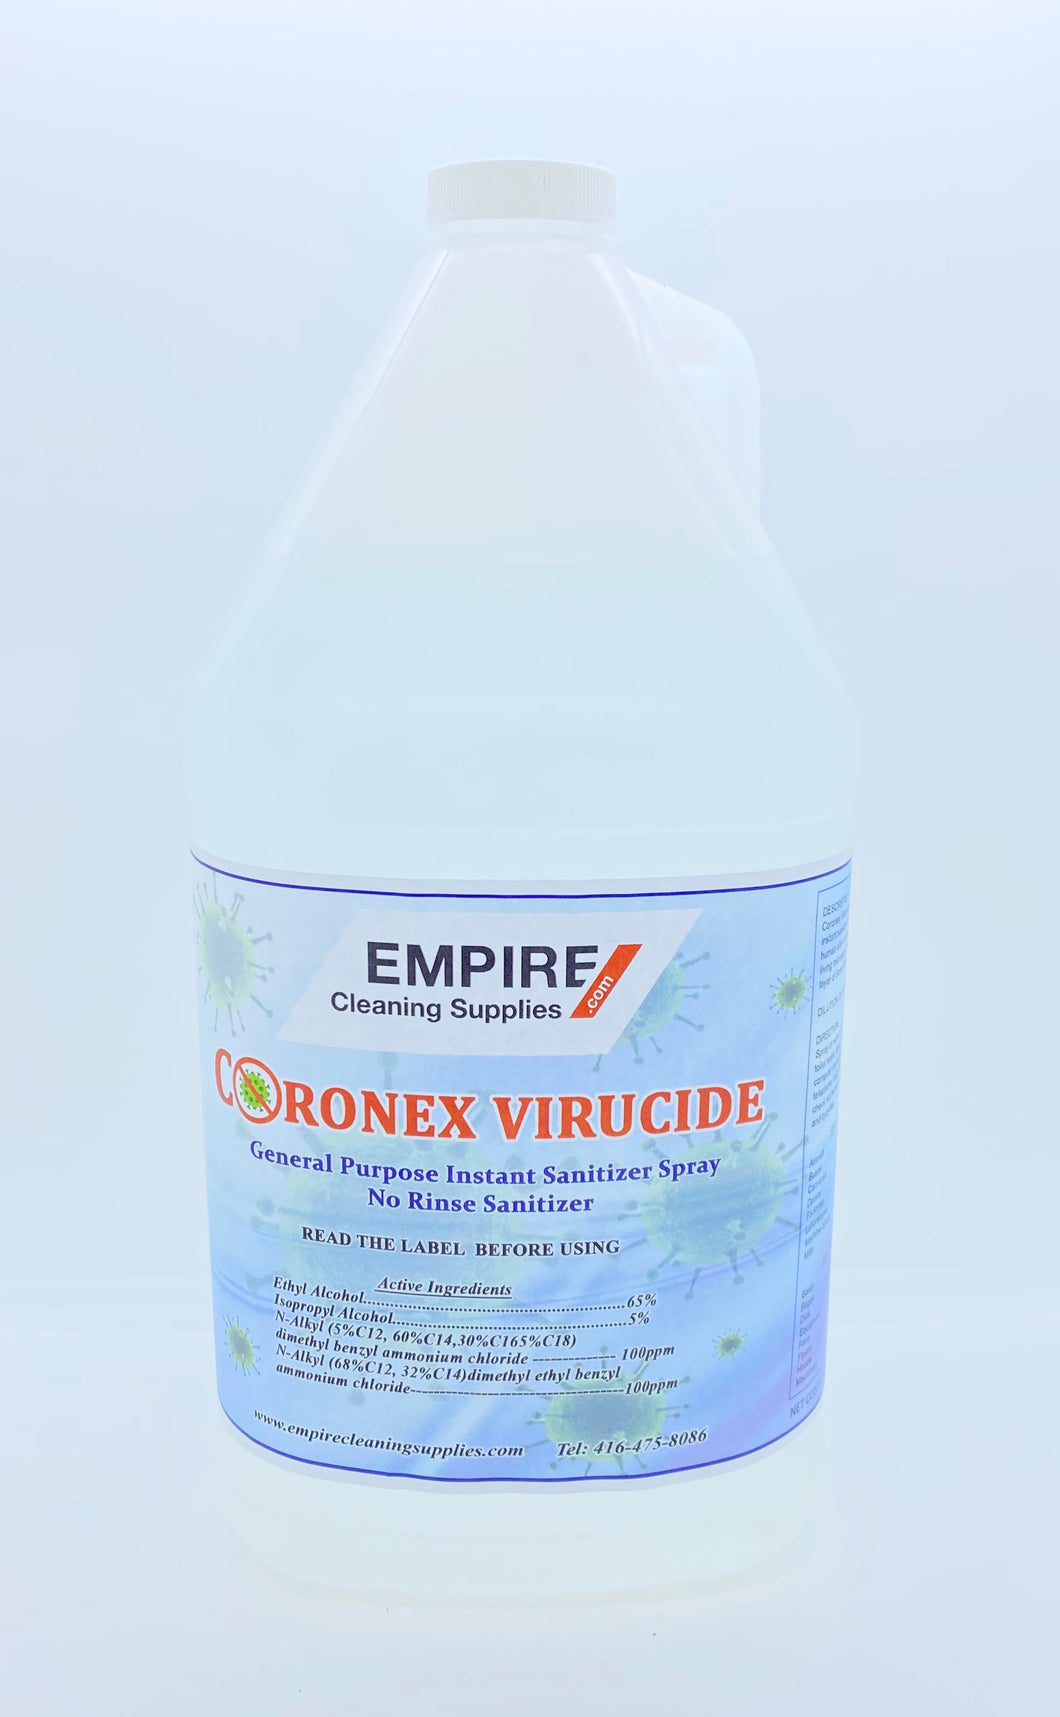 CORONEX VIRUCIDE CLEANER SPRAY 4 LITRE JUG